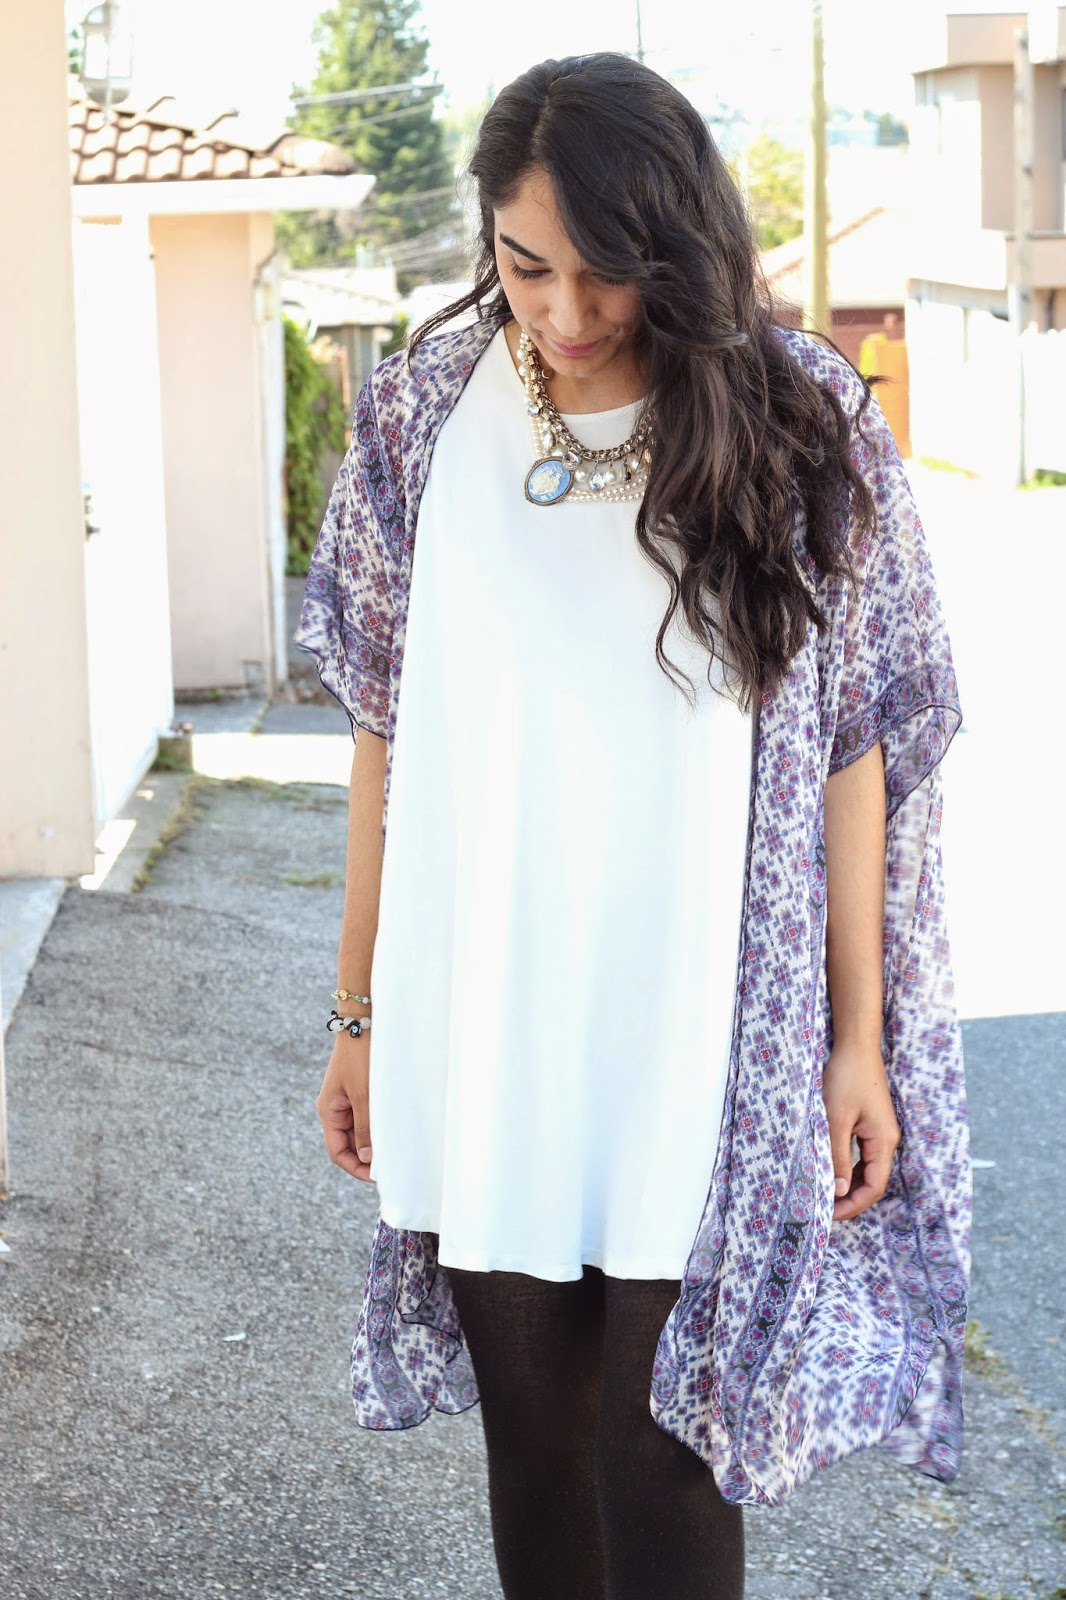 floral kimono outfit with white dress www.footnotesandfinds.com